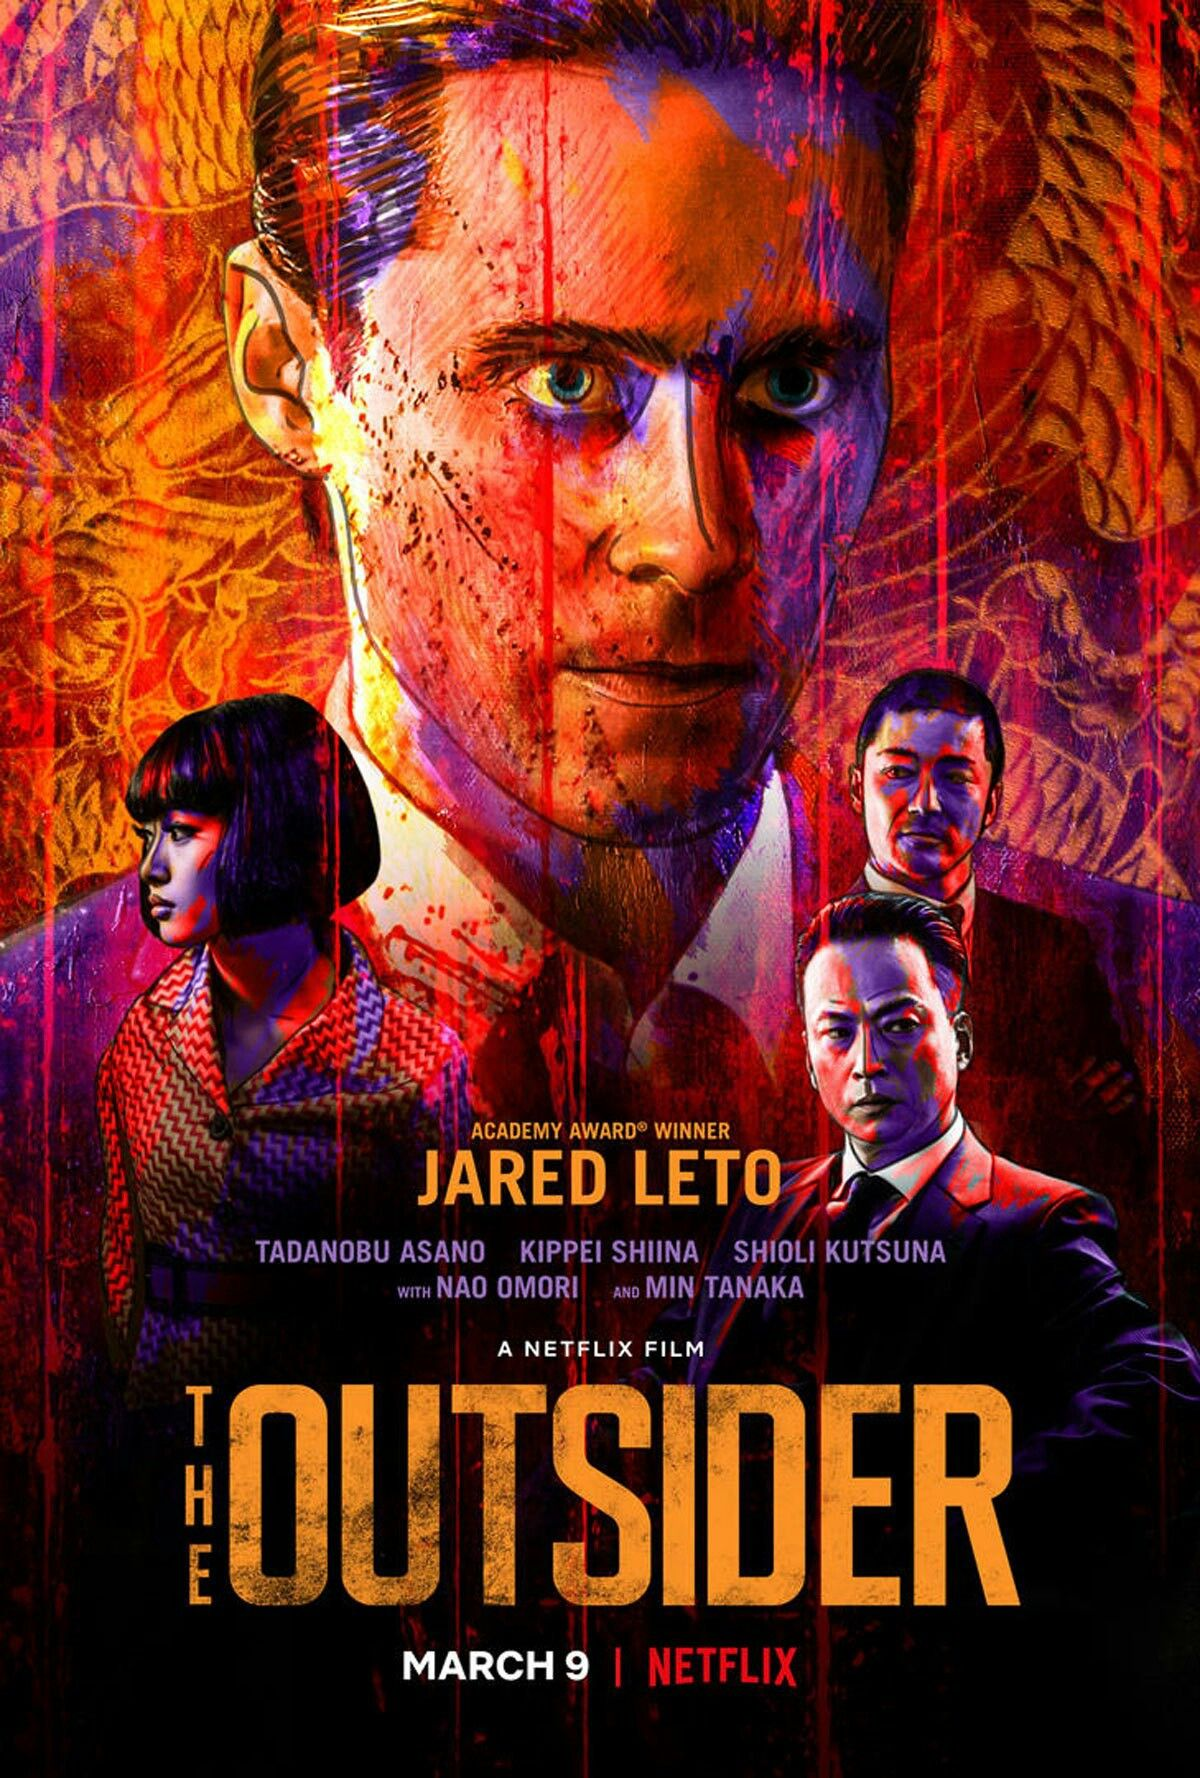 ( Netflix ), The Outsider Streaming movies free, The